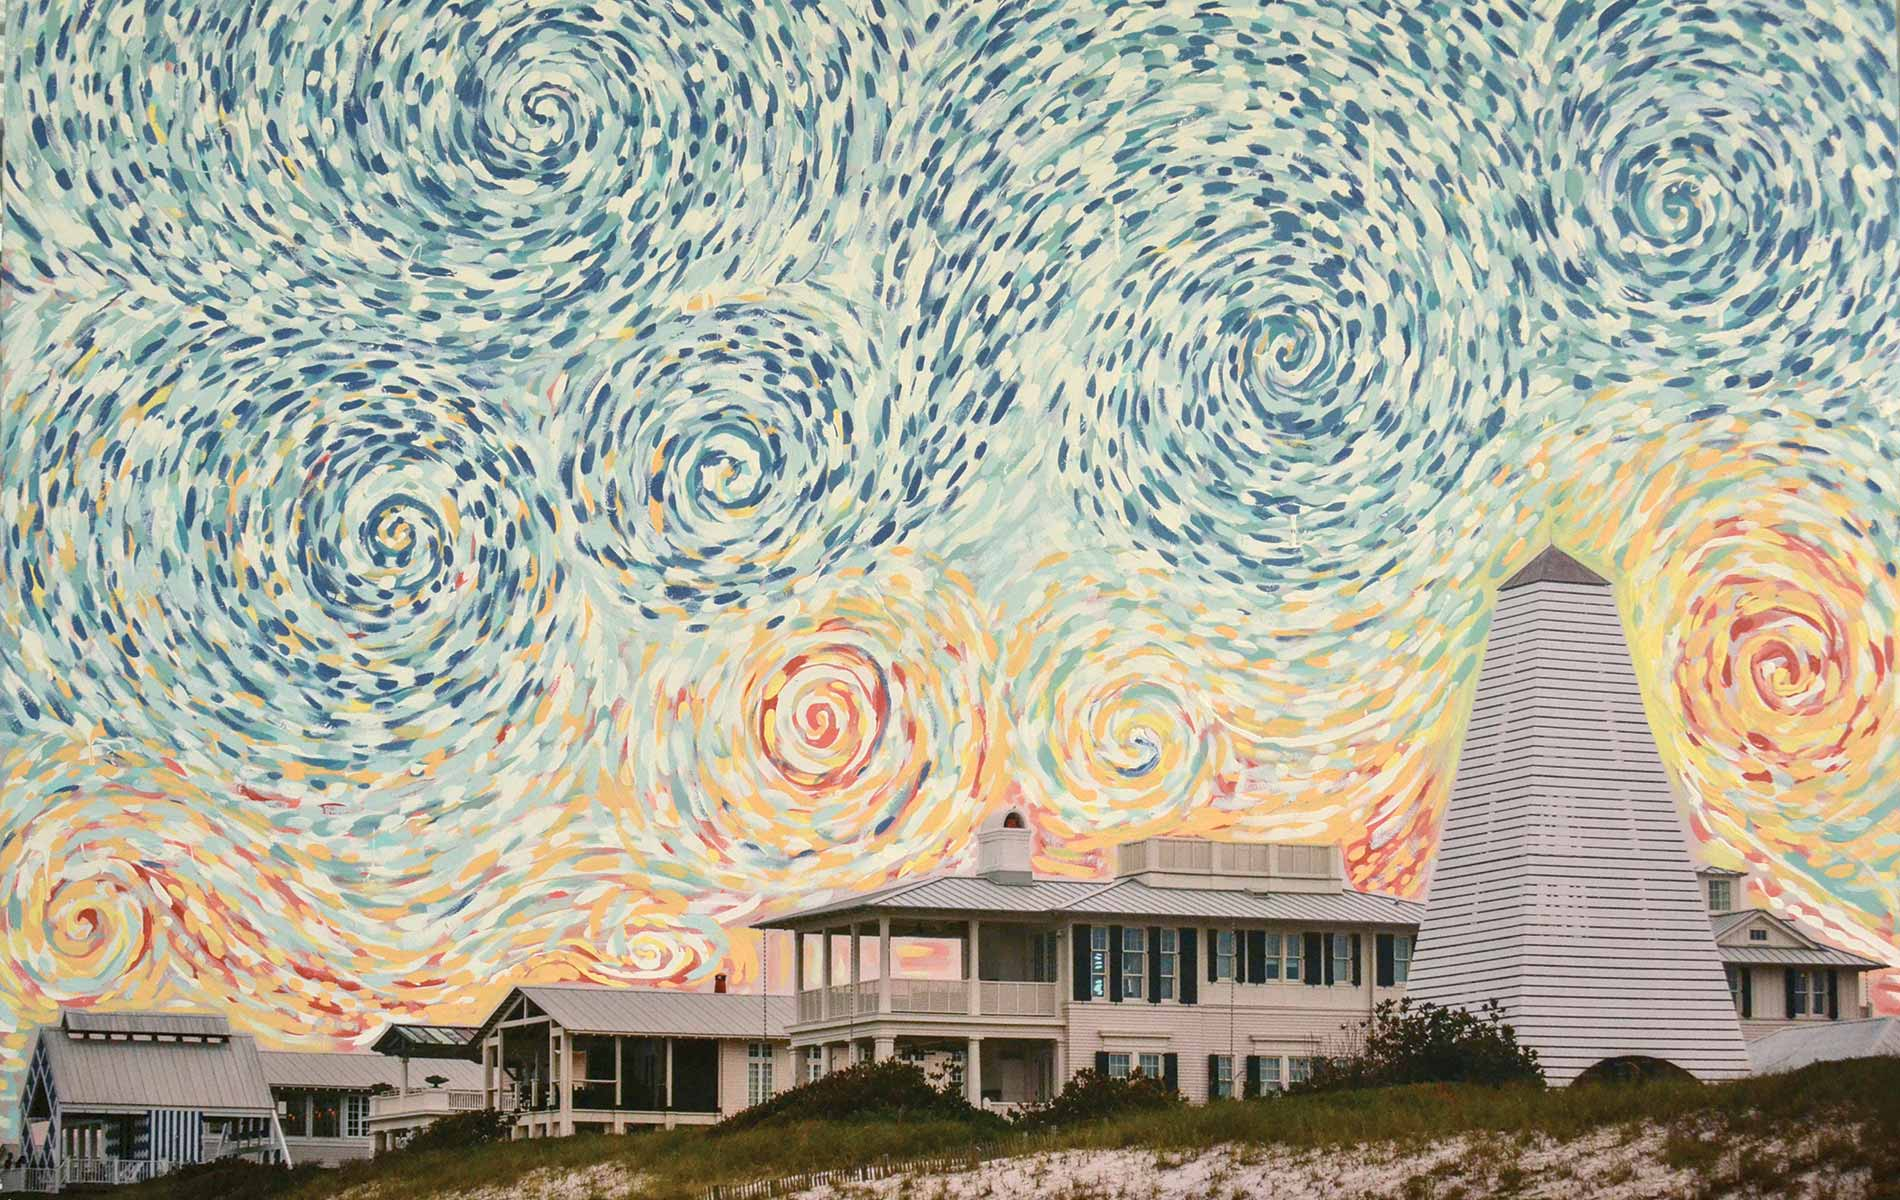 Andy Saczynski and Ryan Manthey collaborative painting Seaside Swirls artists photography paint